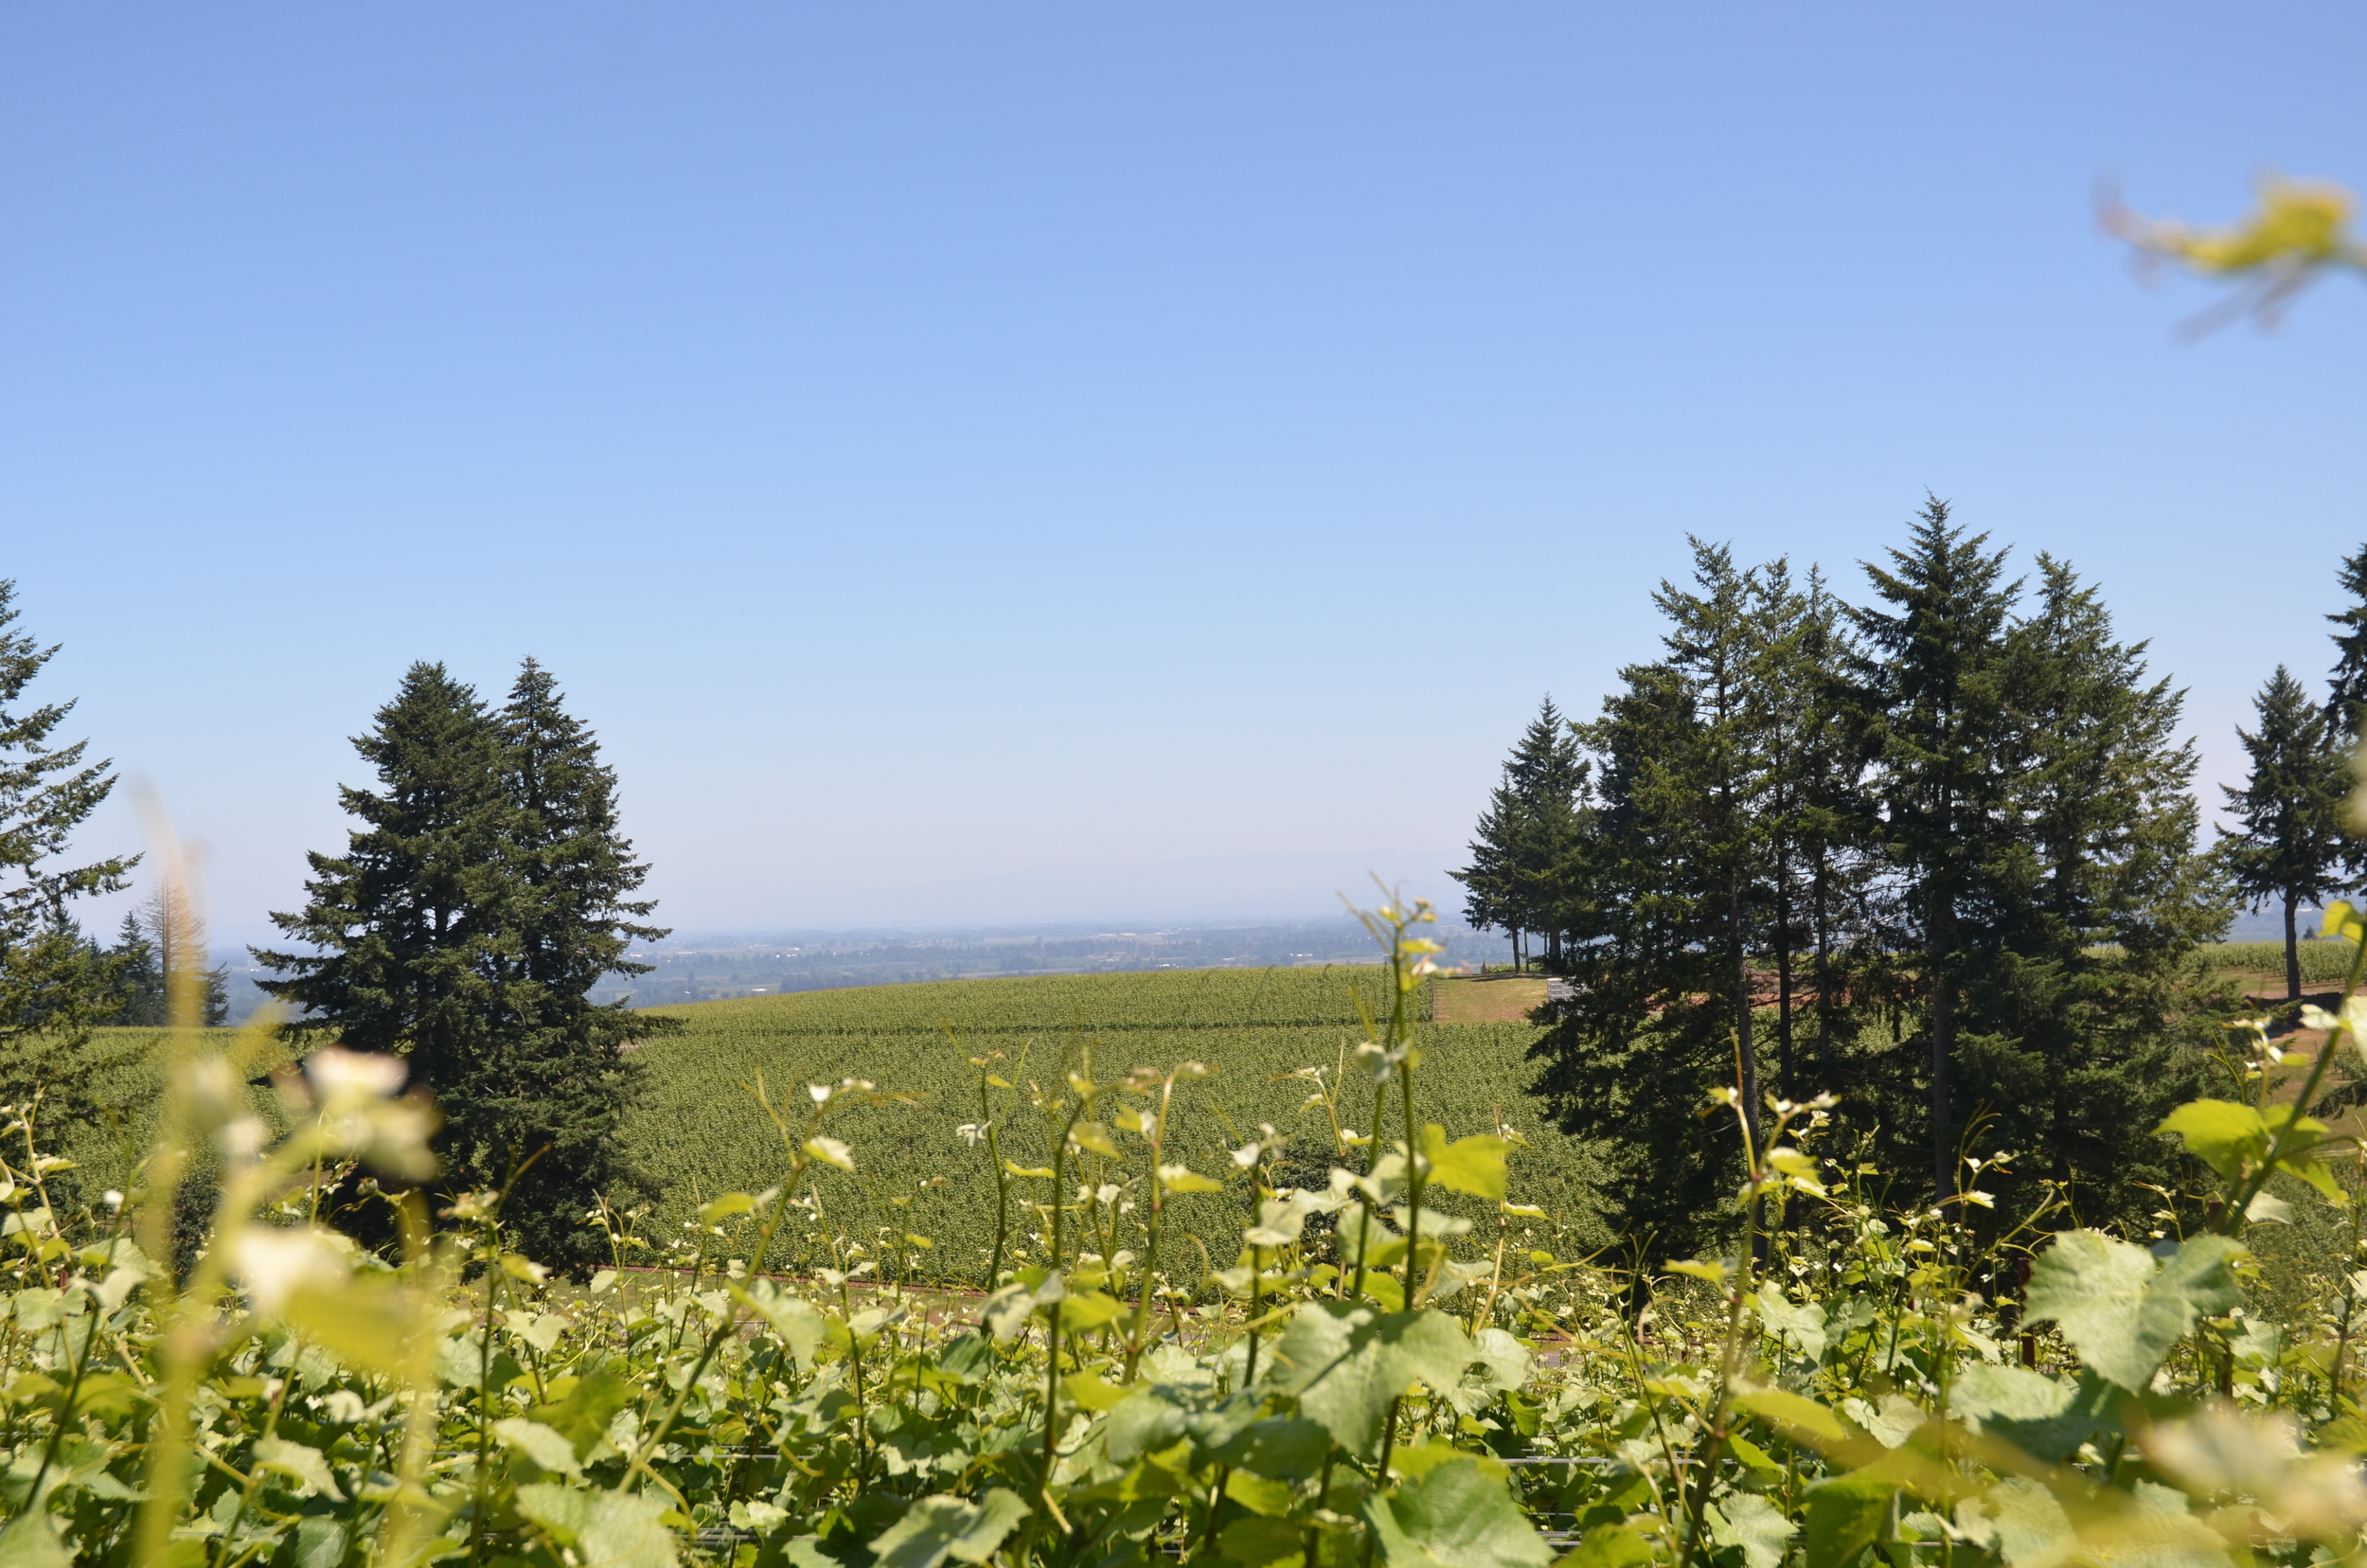 Bieze vineyards is one of the vineyards featured in the 2015 Ponzi Classico Pinot noir